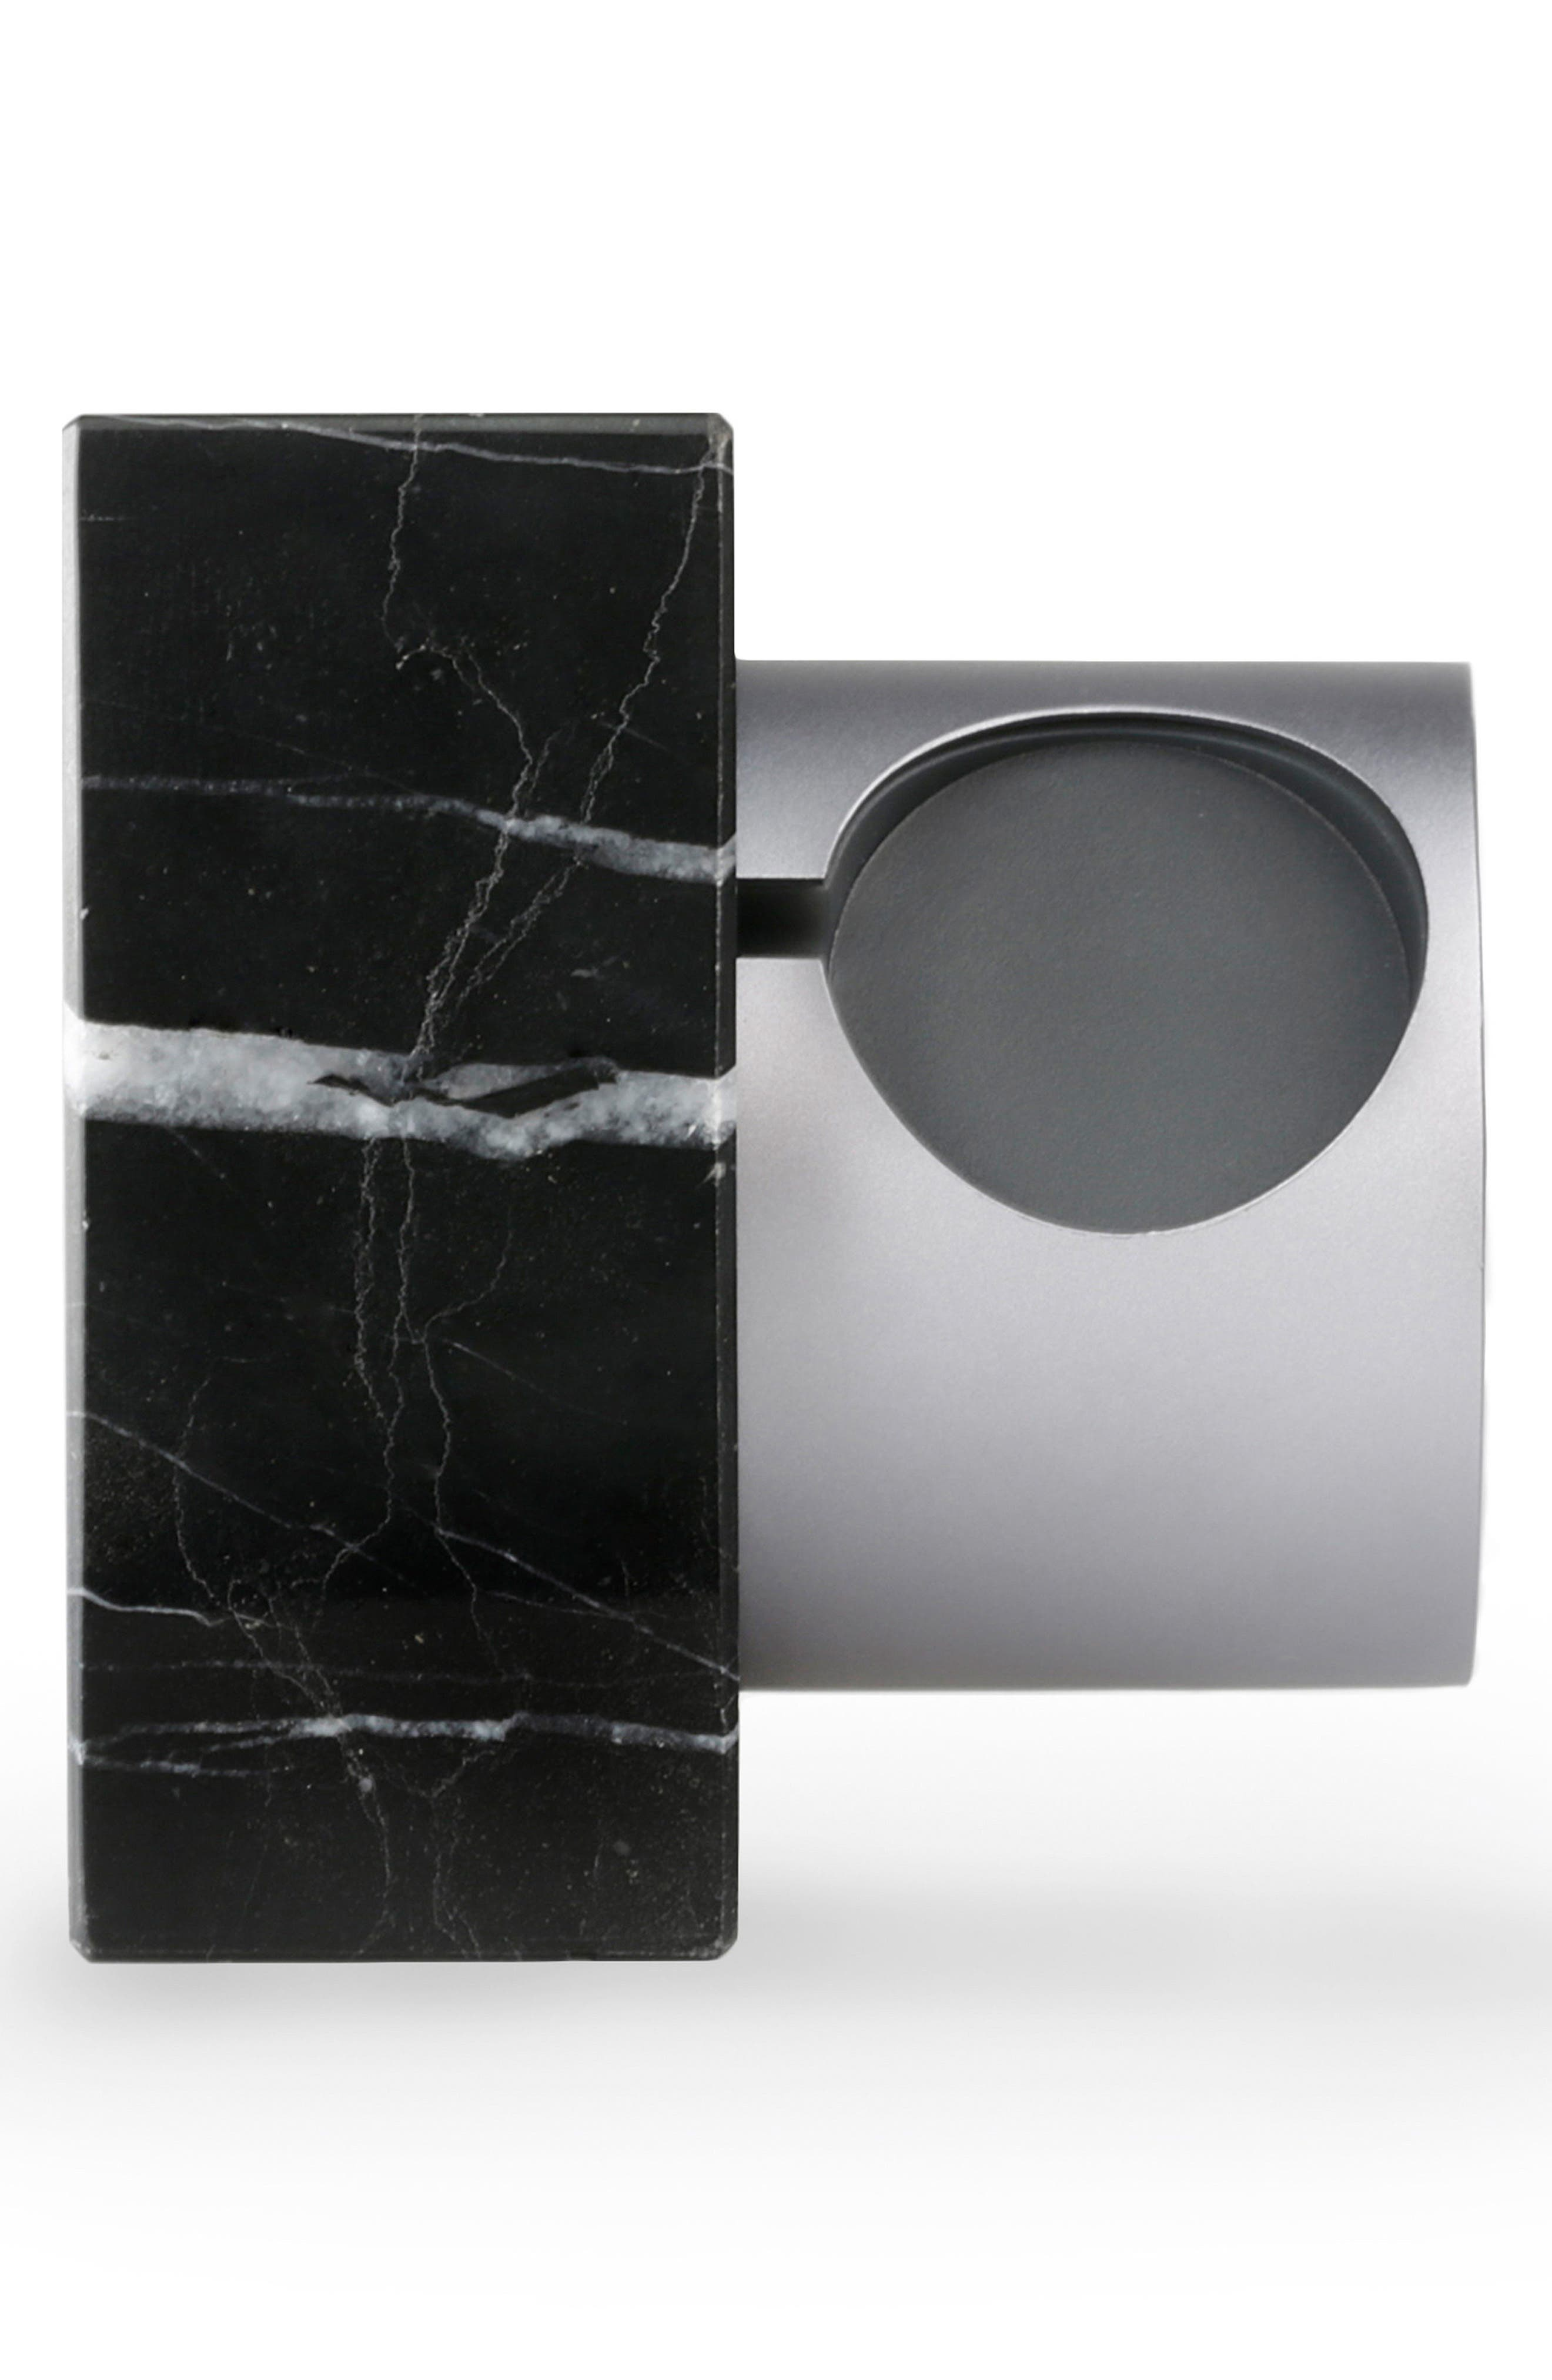 DOCK Marble Apple Watch Dock & Charging Station,                         Main,                         color, Black Marble